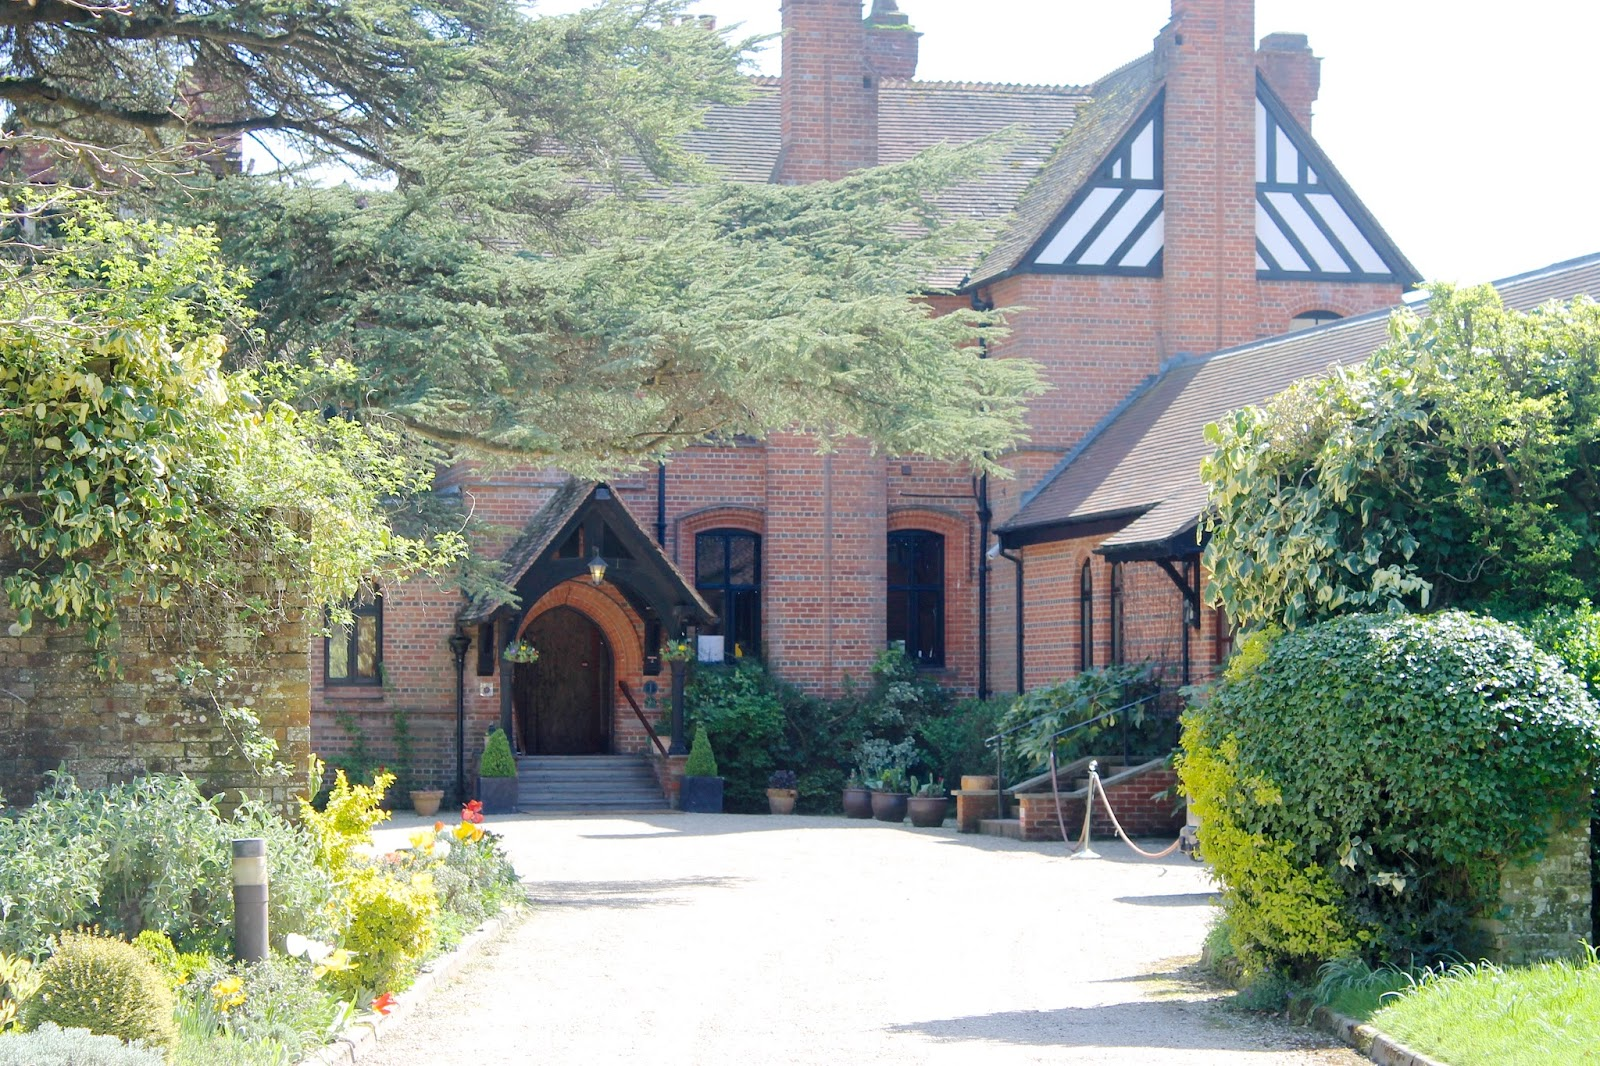 Careys Manor Hotel & Senspa, Senspa, careys manor, new forest spa, new forest, british spas, spa uk, manor hotel, new forest manor, places to stay in the new forest